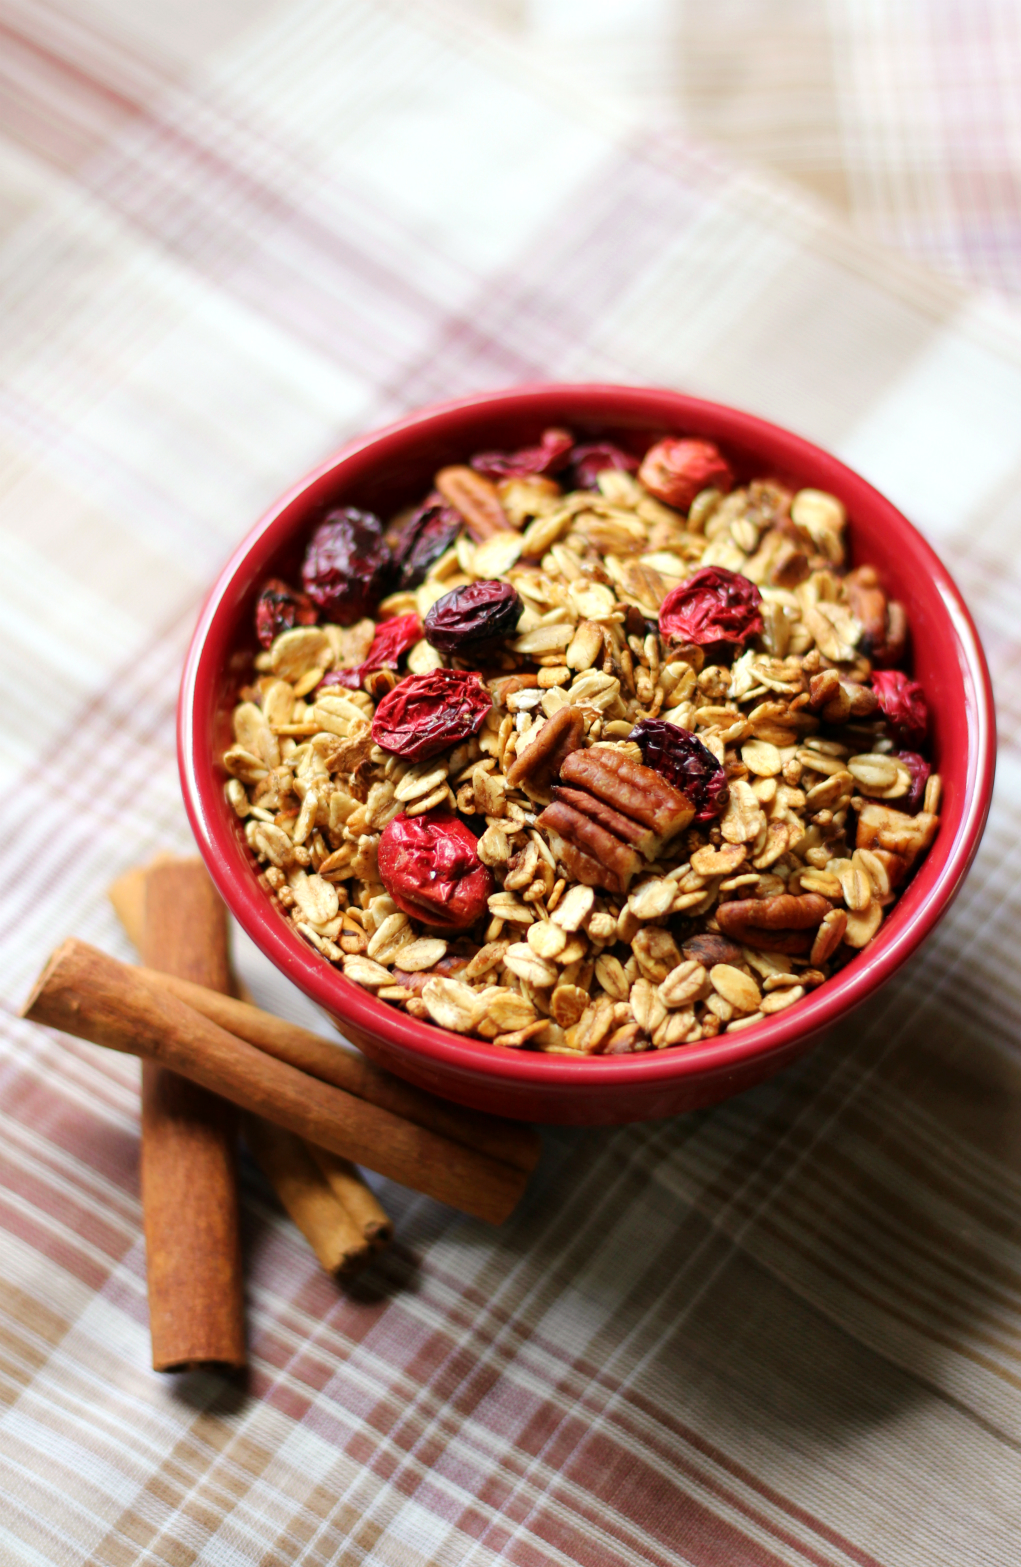 Cranberry Pecan Spiced Skillet Granola | Strength and Sunshine @RebeccaGF666 Bring the scents of cozy warmth and cheer to you home by making this stove-top cranberry pecan spicy skillet granola. Gluten-free and vegan, the perfect healthy treat to munch on, morning, noon, or night! Makes a great breakfast, snack, or homemade gift!